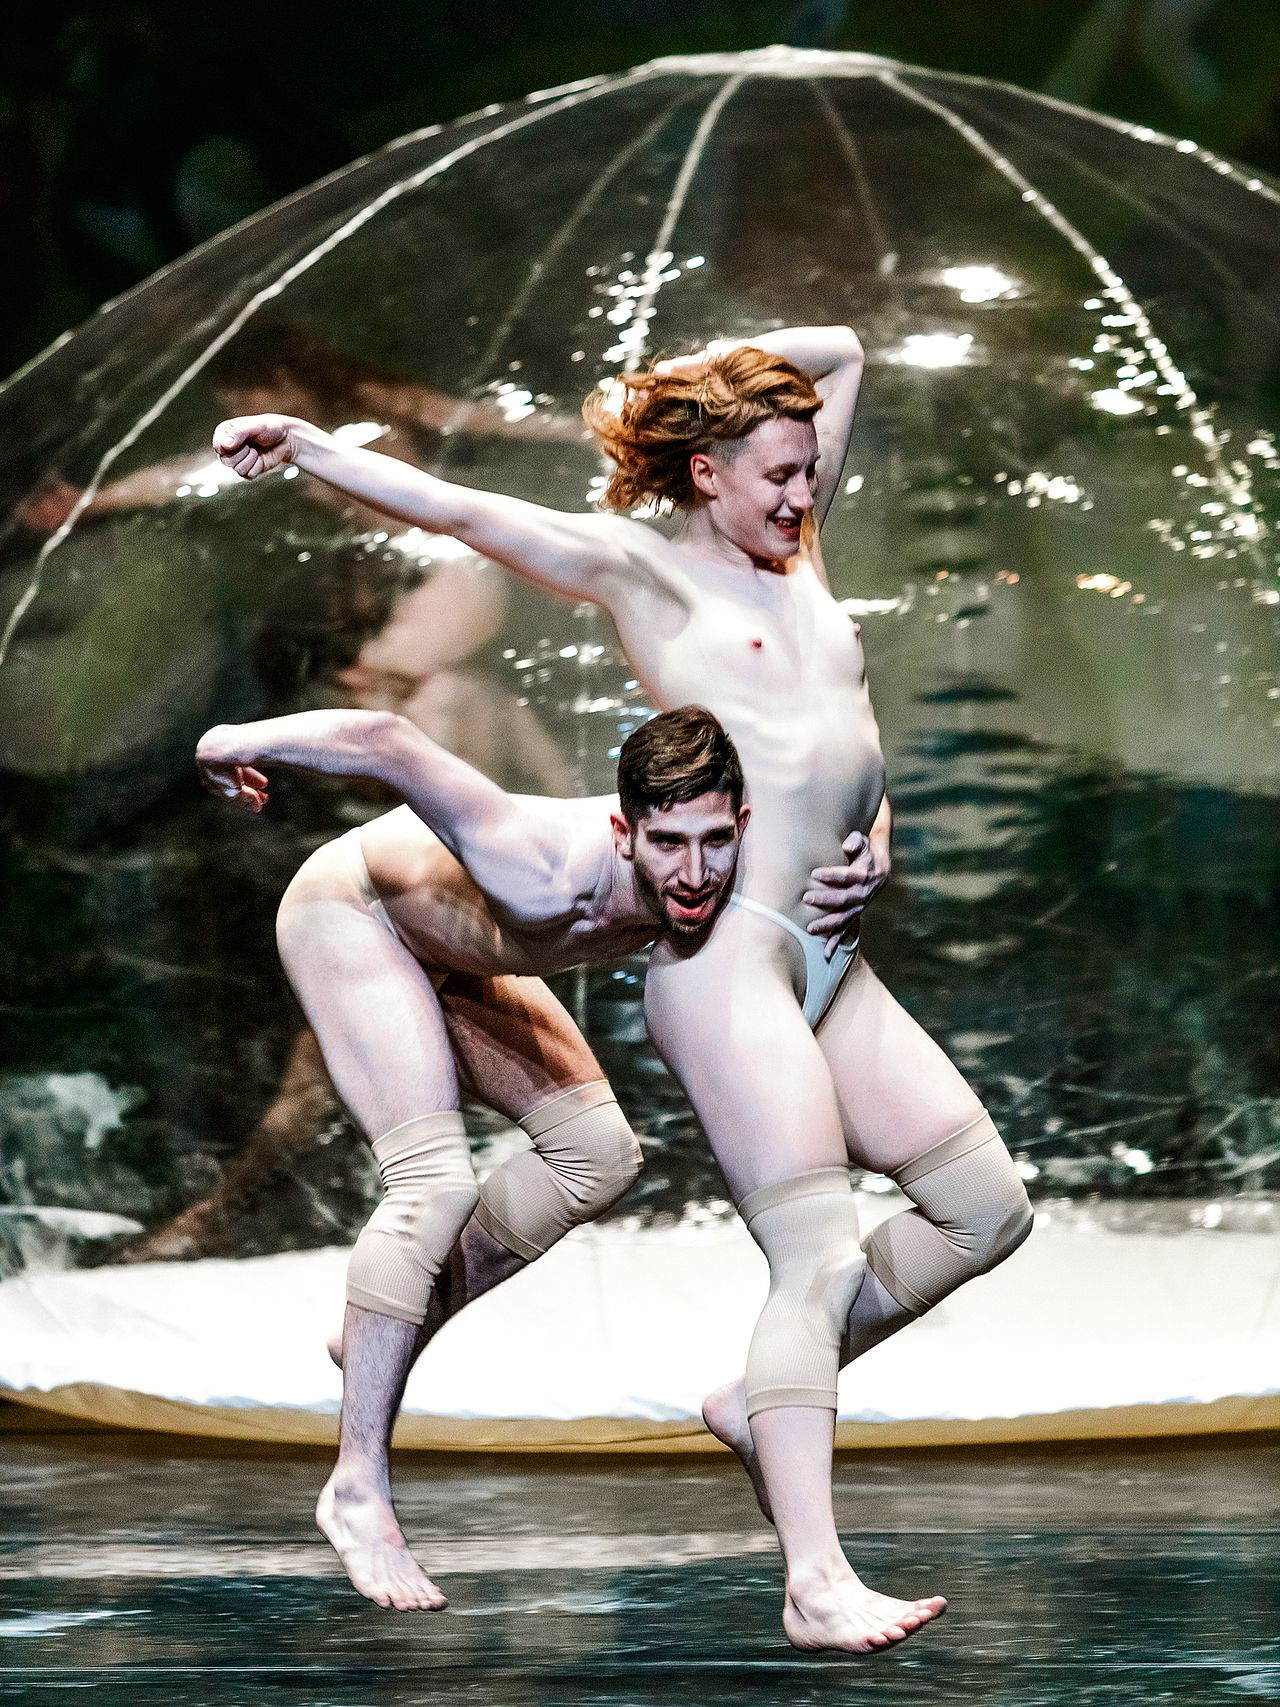 Dansers Leon Kupferschmid en Lucy M. May in 'The Garden of Earthly Delights'.